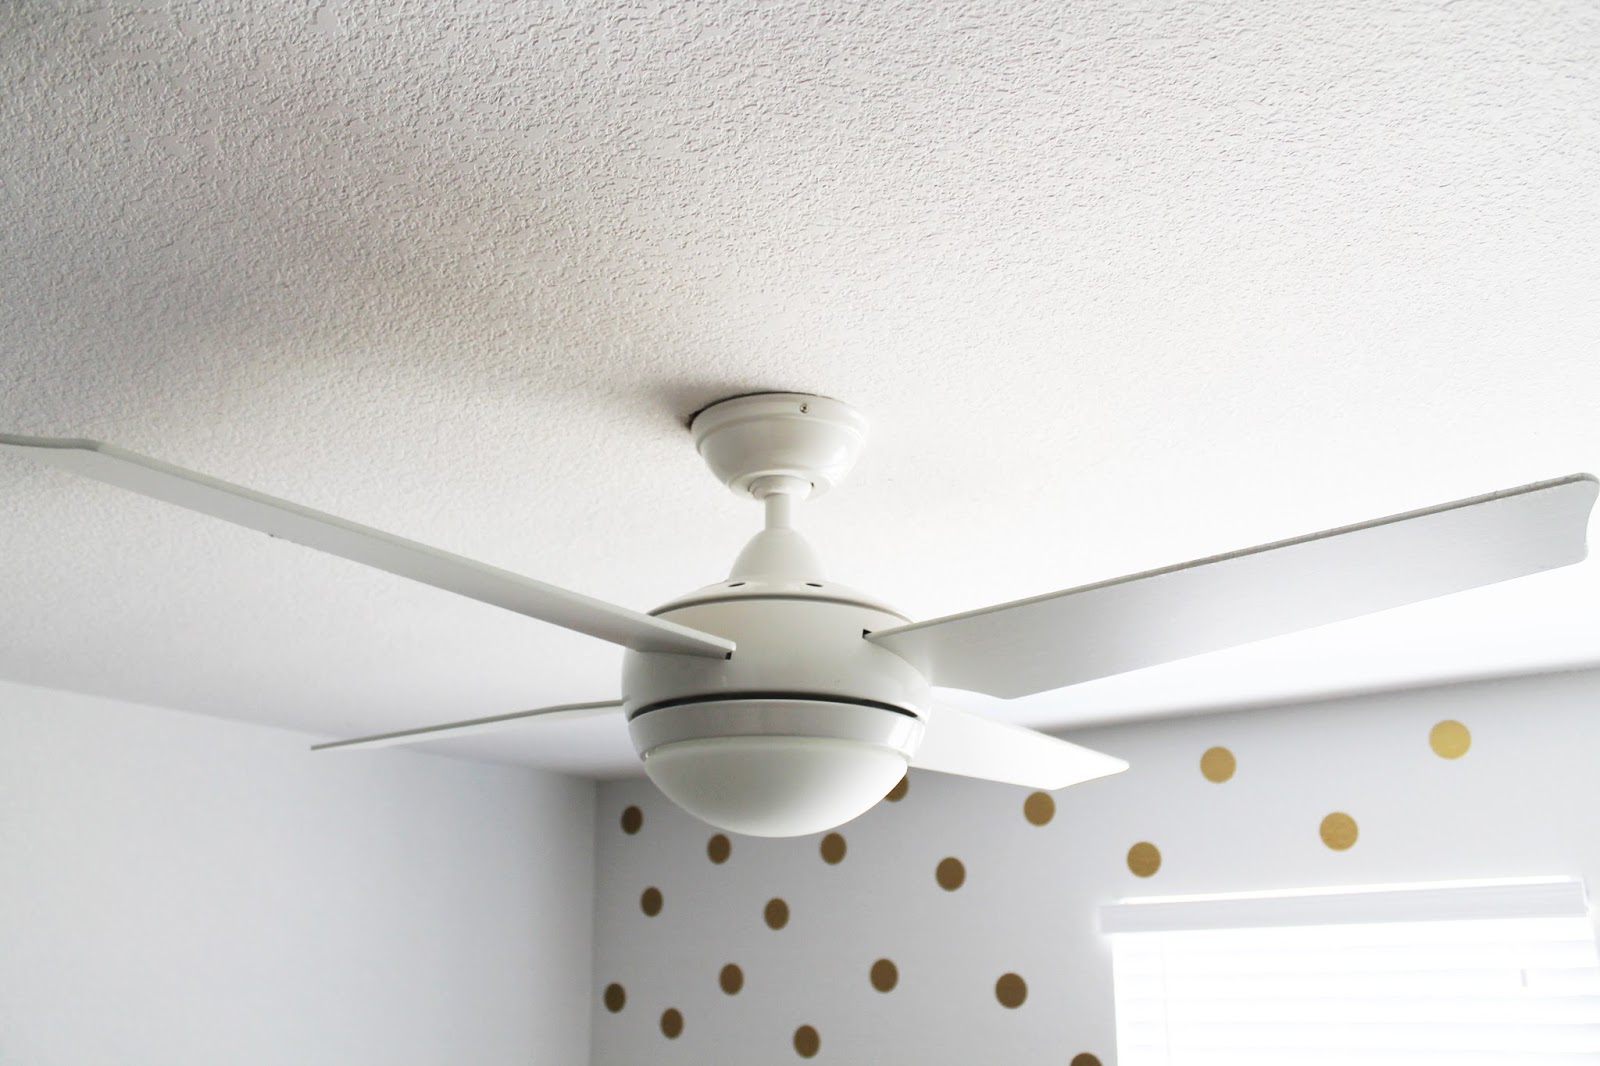 Cinsarah: Texas   Ceiling Fans | Hunter Fan Co. Giveaway for Cool White Ceiling Fans  287fsj